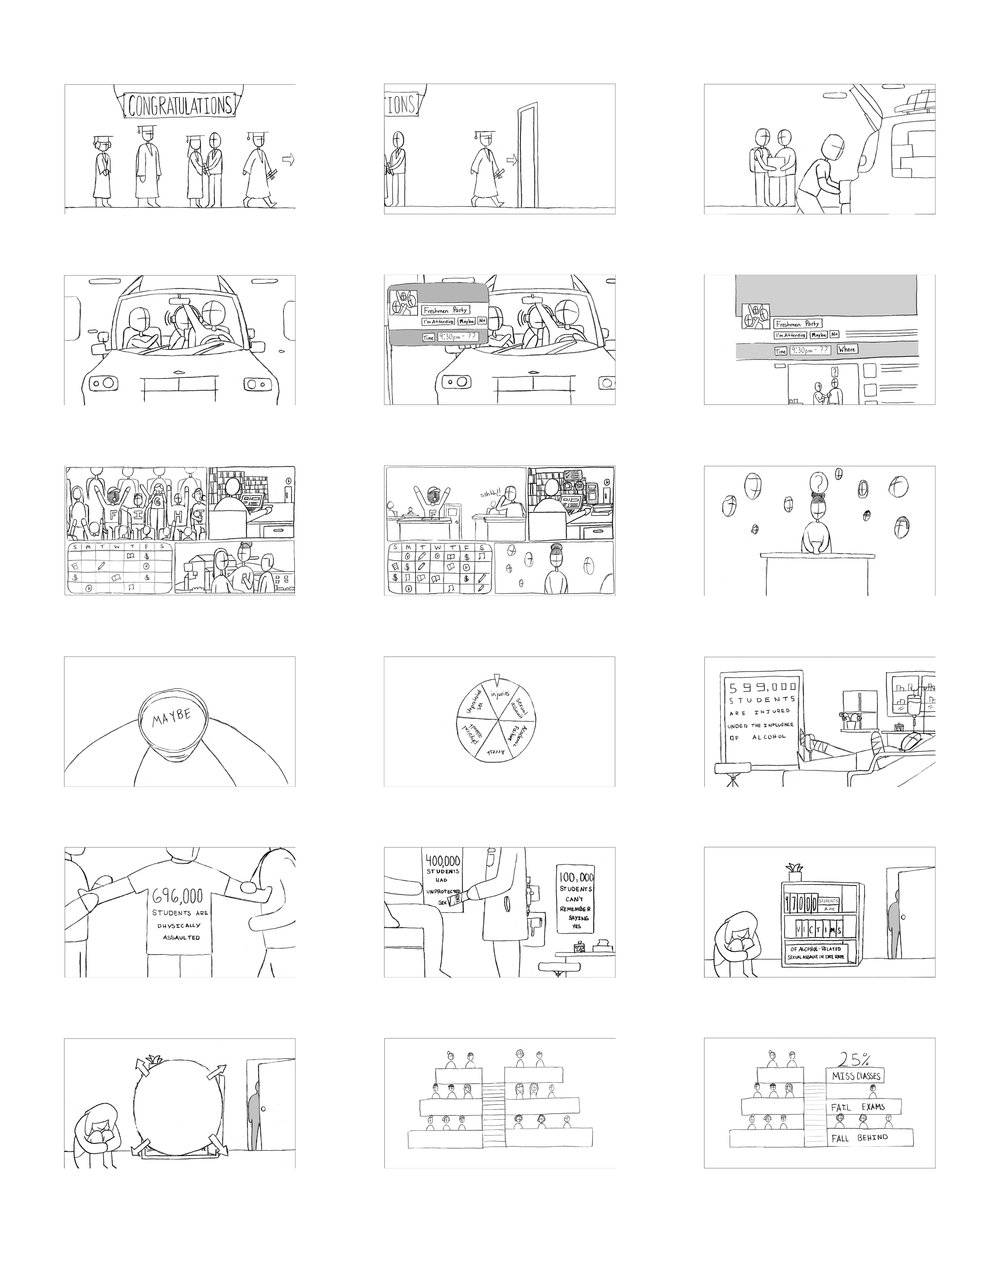 UAD_Transition_Storyboard_01_v01.jpg